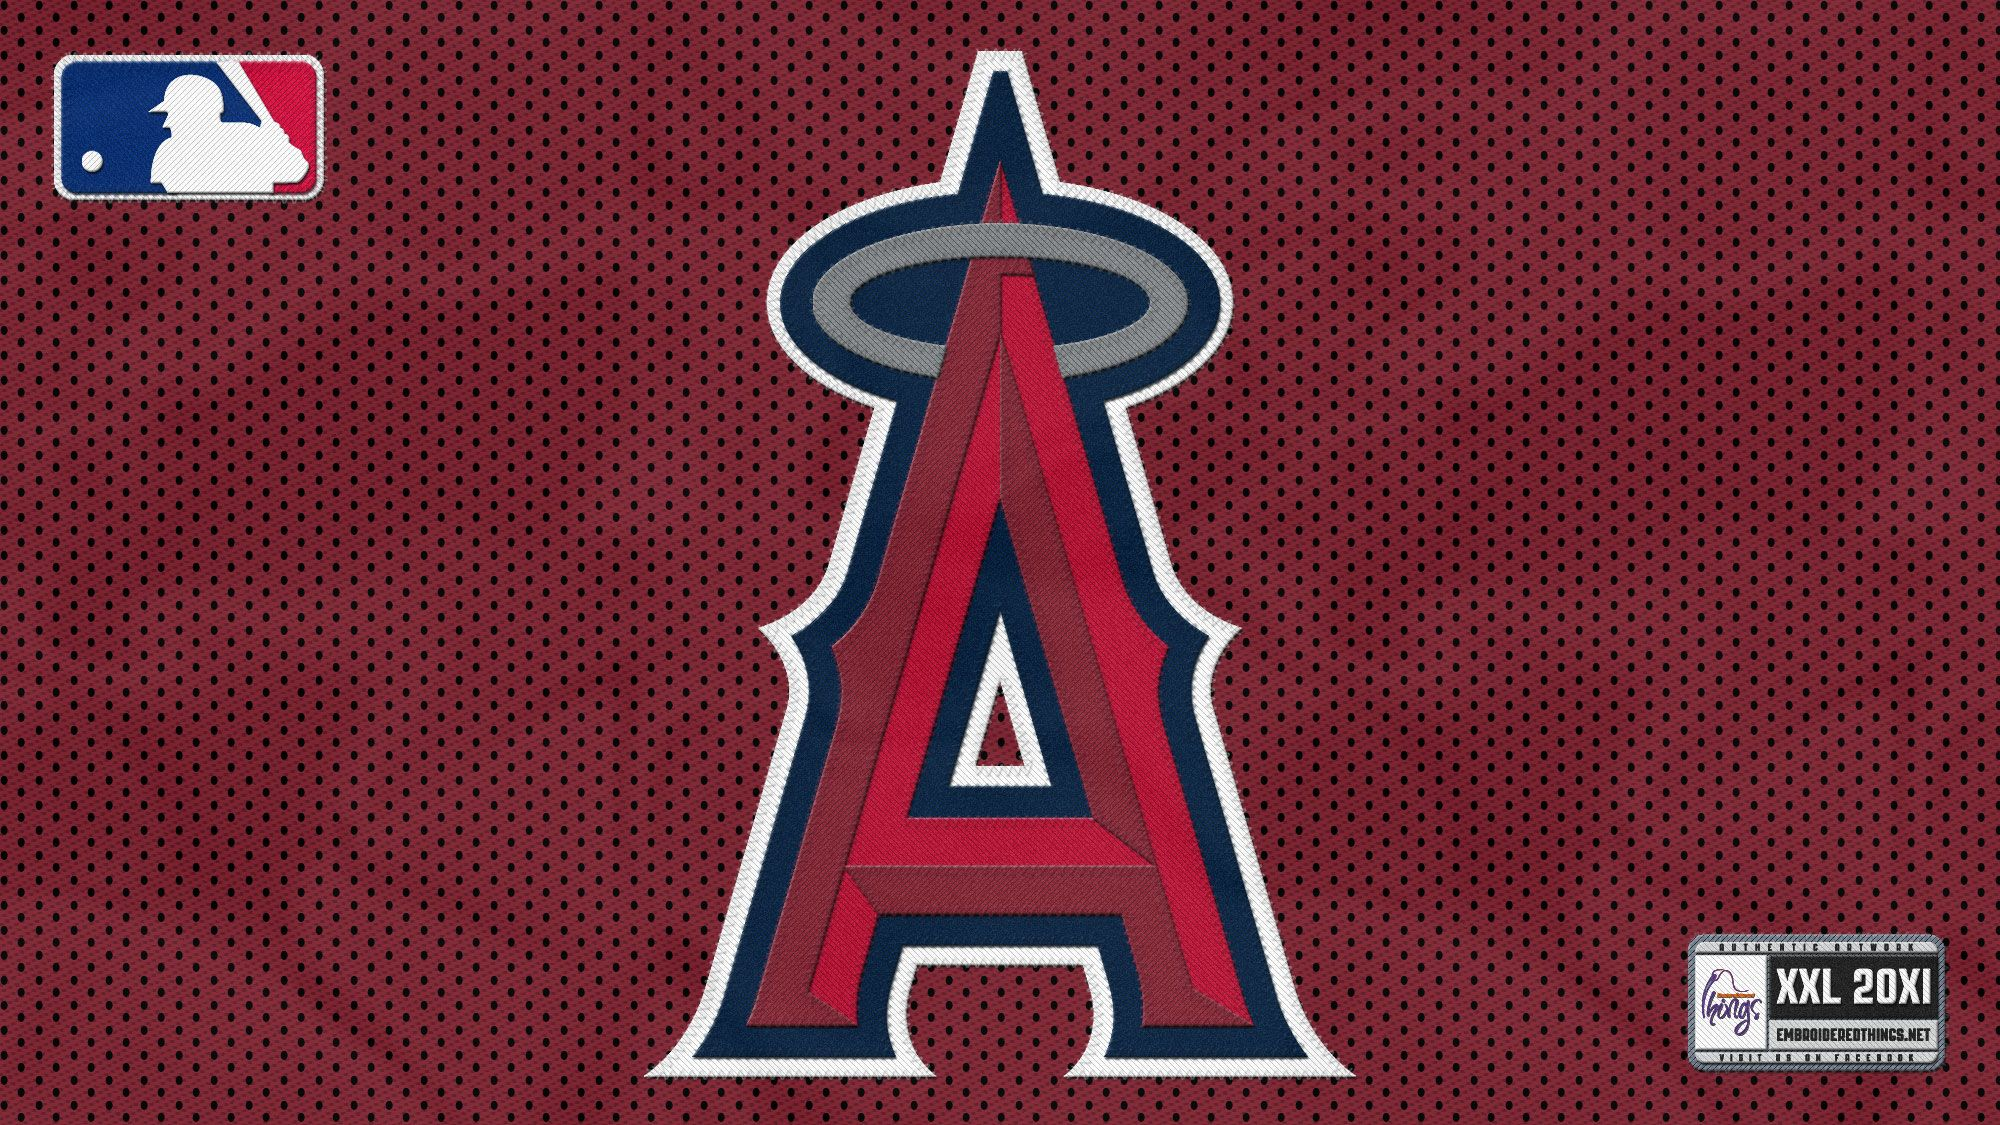 Los Angeles Angels Wallpaper Desktop Wallpapersafari Angel Wallpaper Los Angeles Angels Anaheim Angels